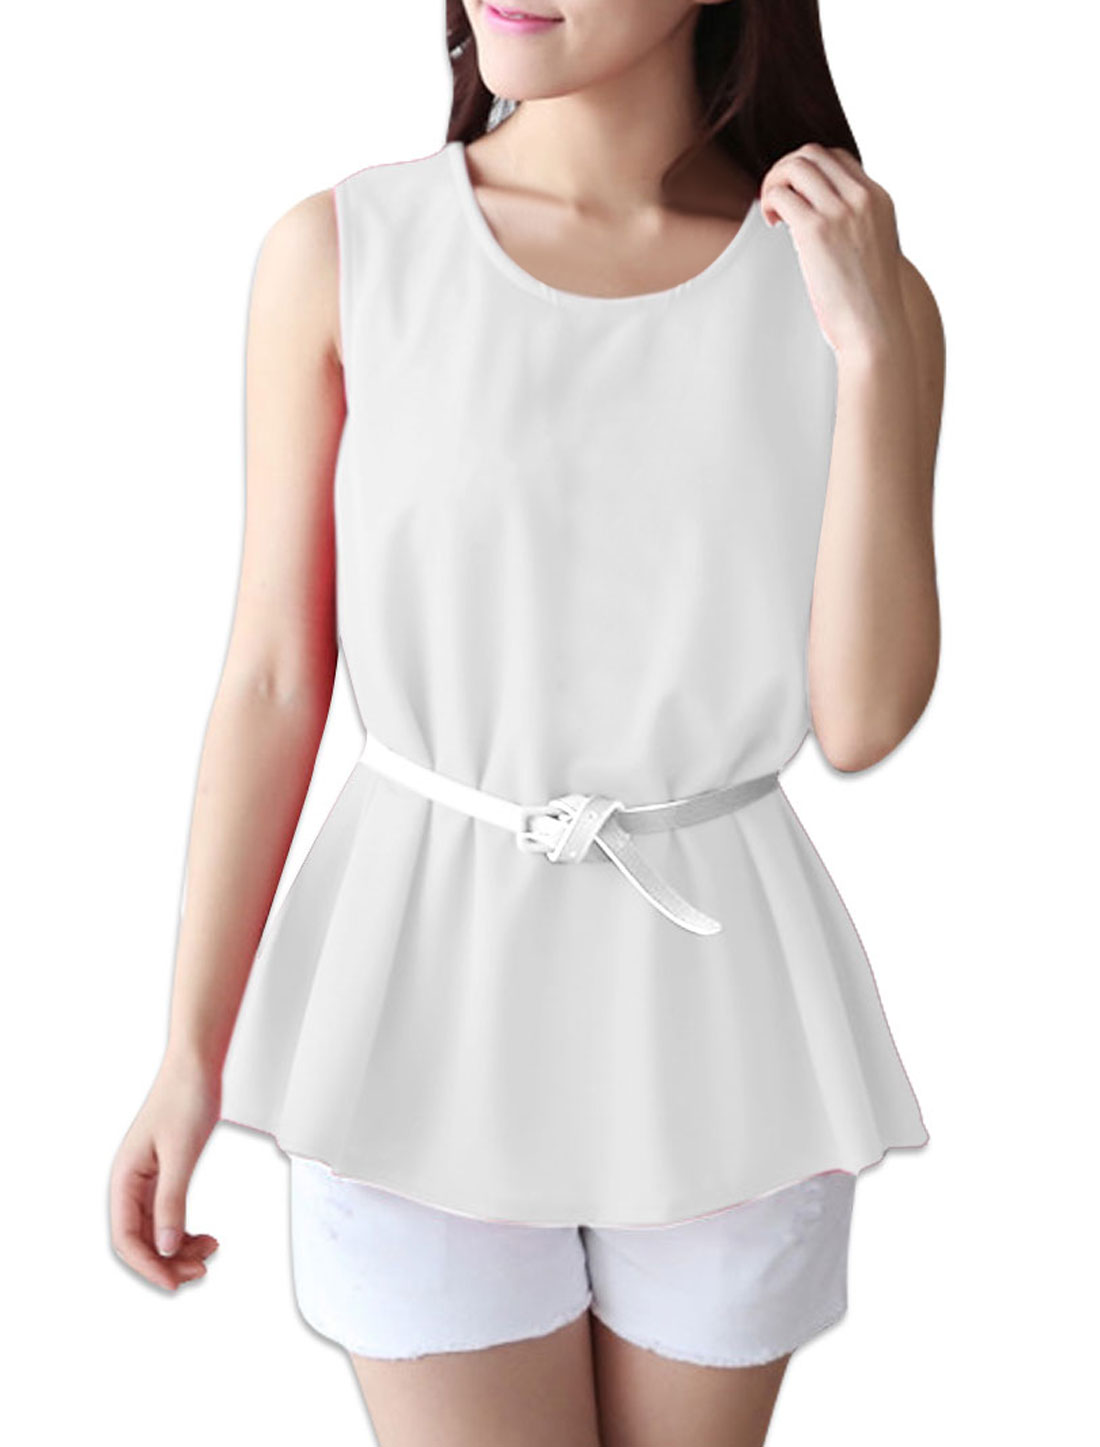 Woman Round Neck Sleeveless Flare Hem White Tank Top w Faux Leather Belt S